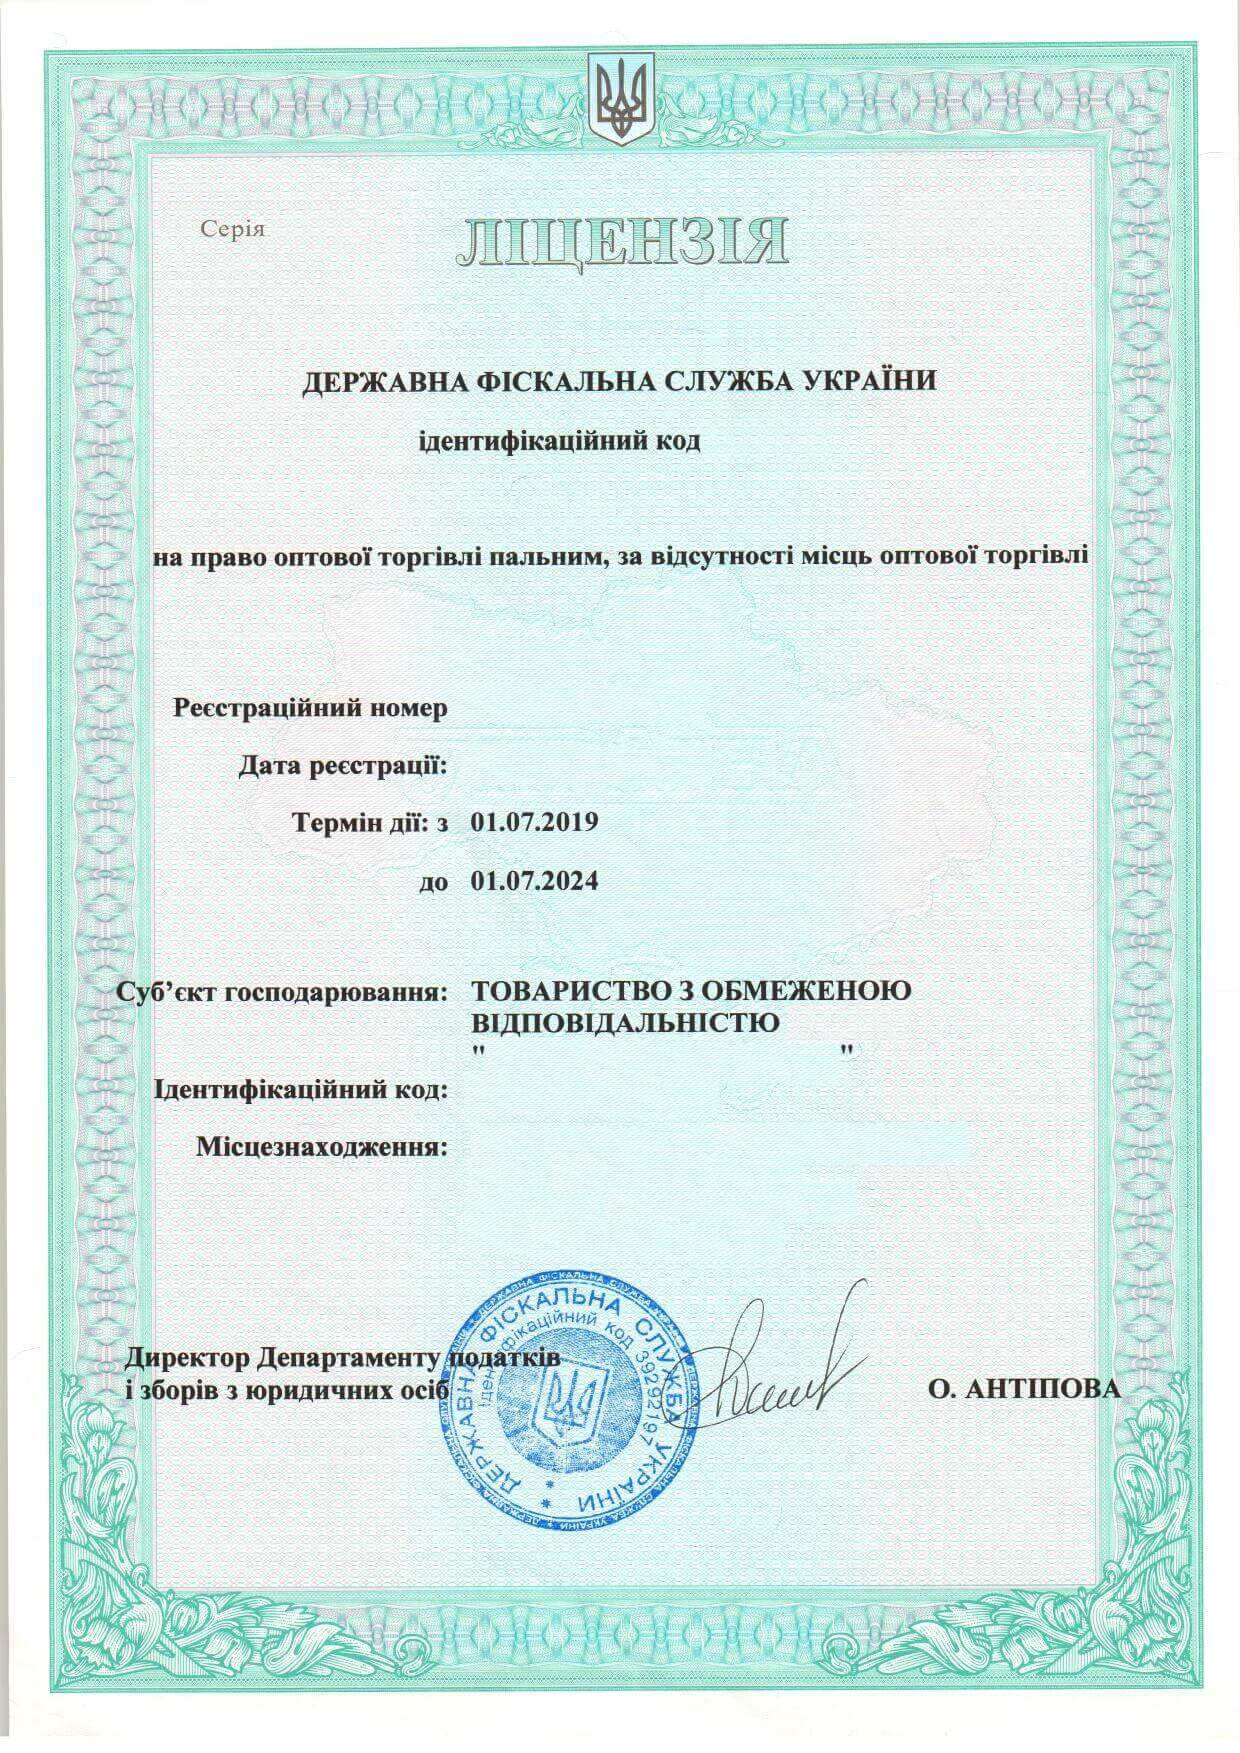 License for oil products retail/wholesale trade, their production and storage